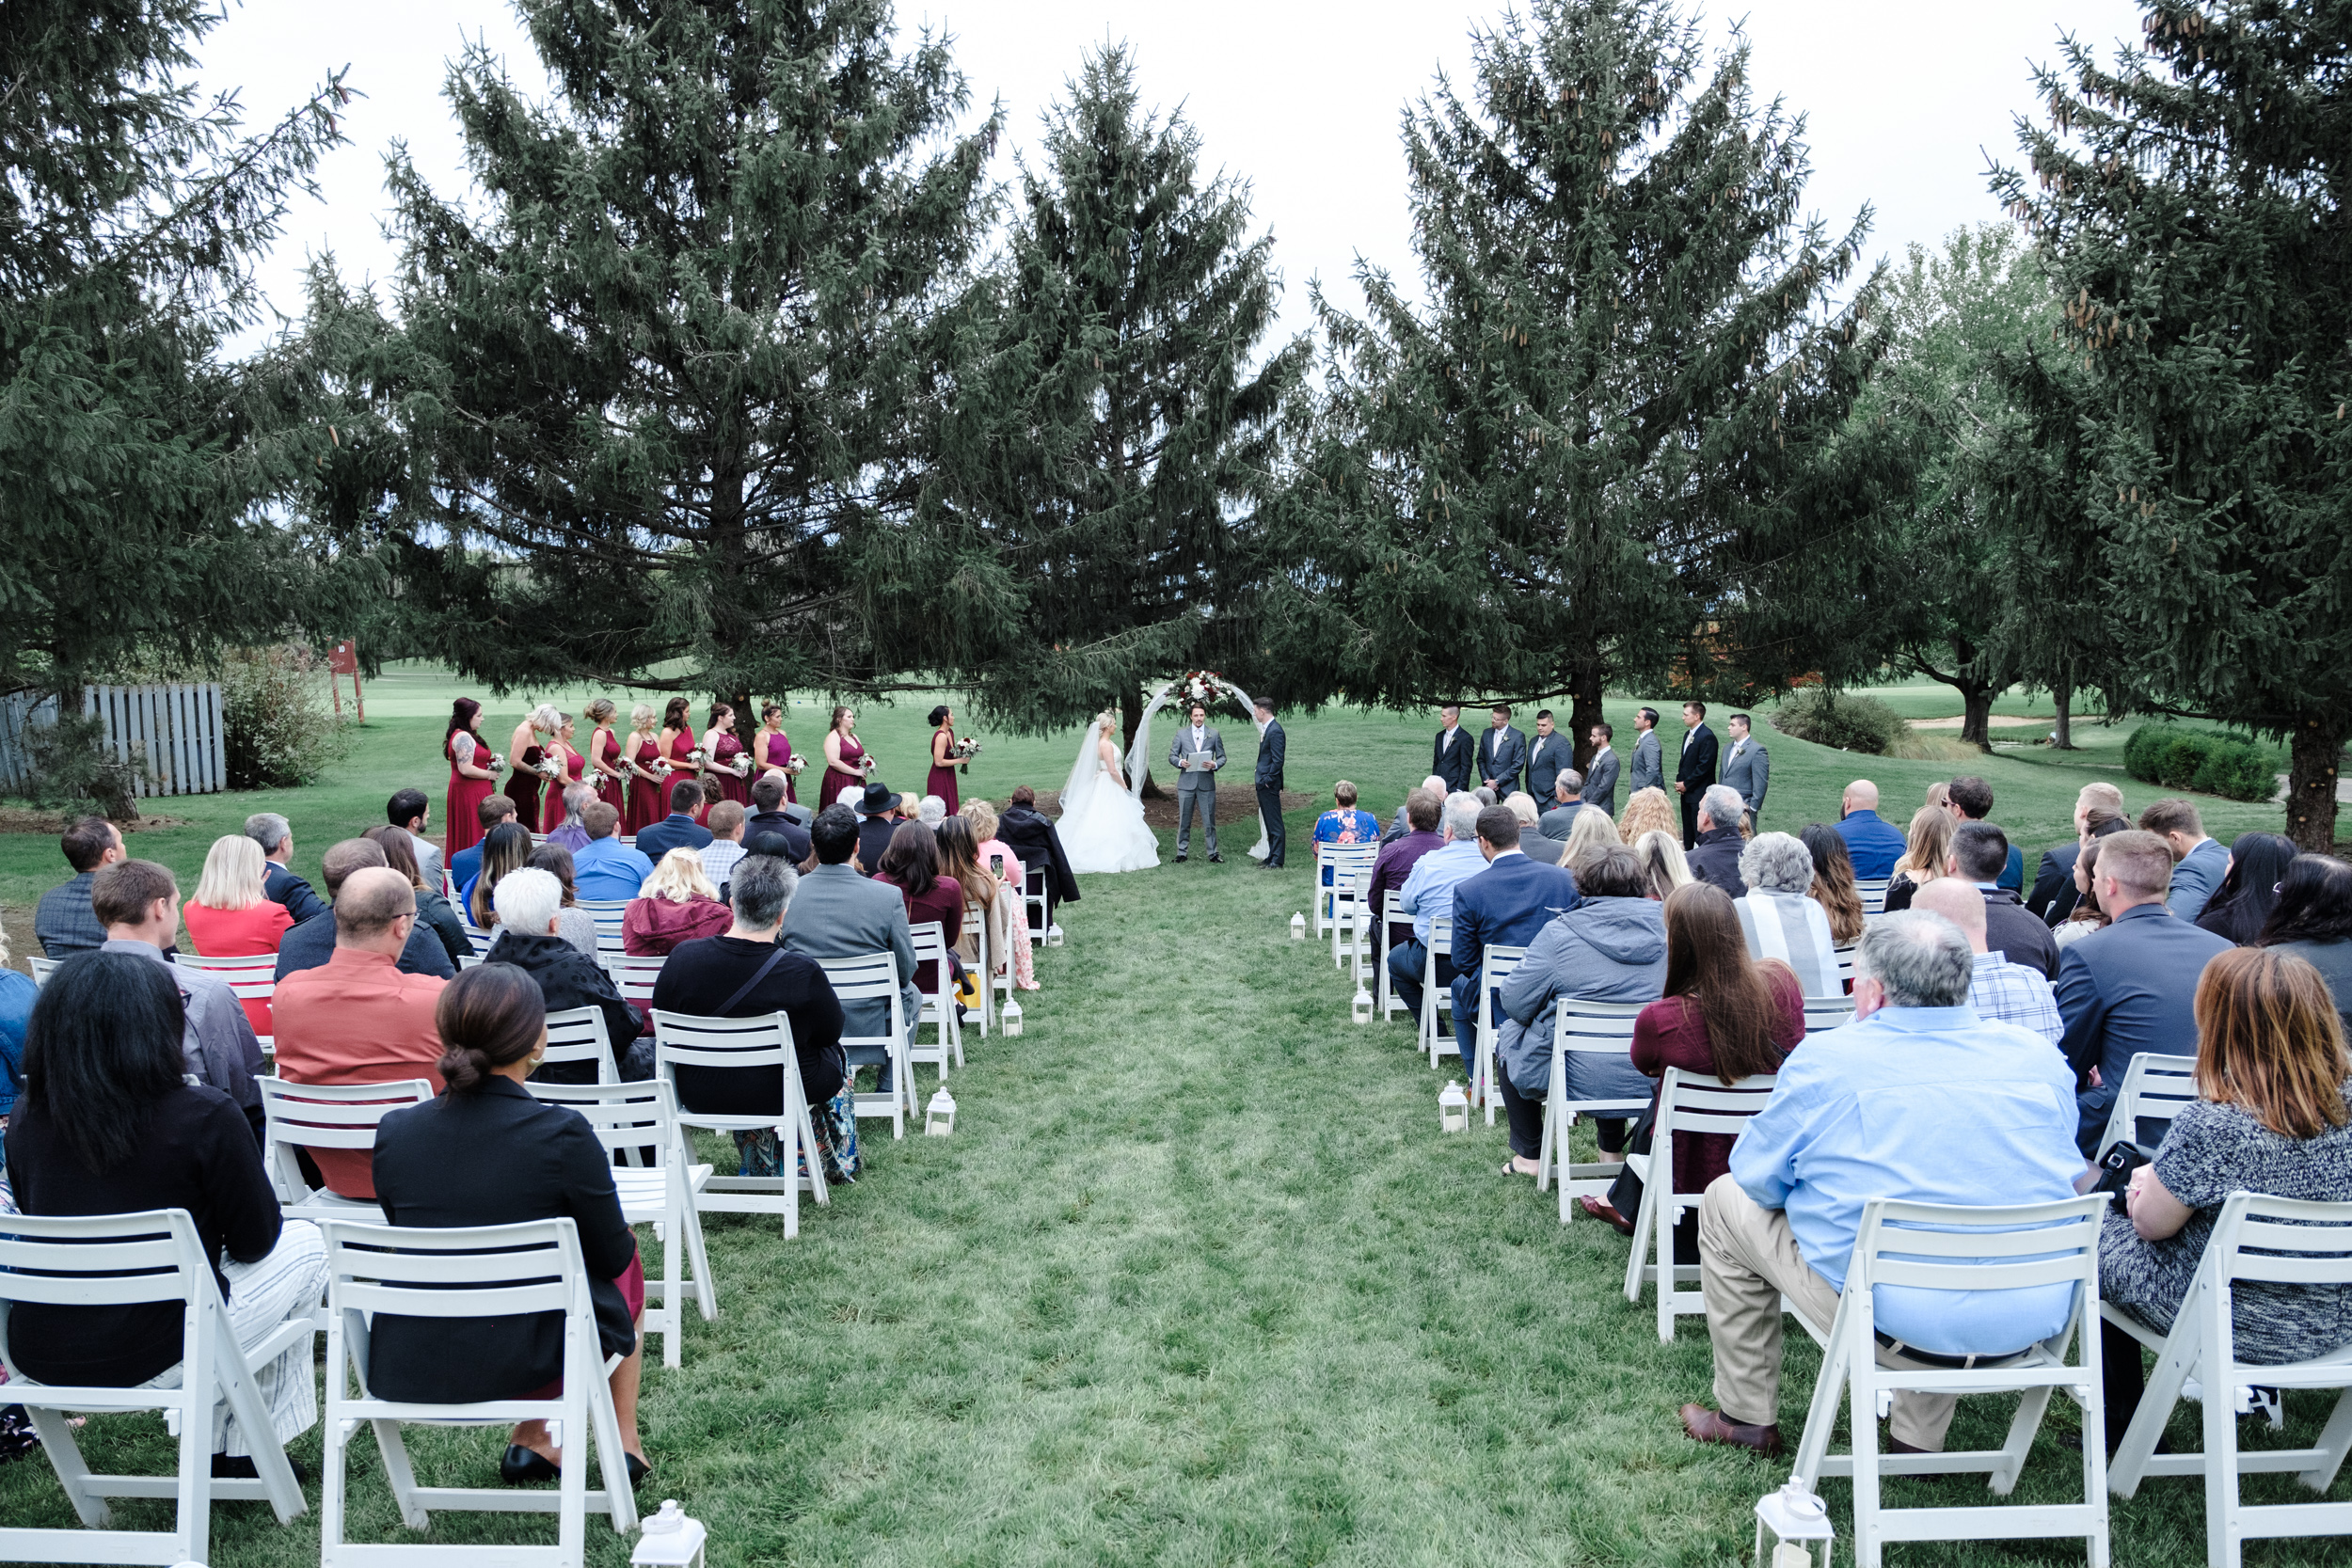 Outdoor summer wedding ceremony at Rockford Bank and Trust Pavilion.